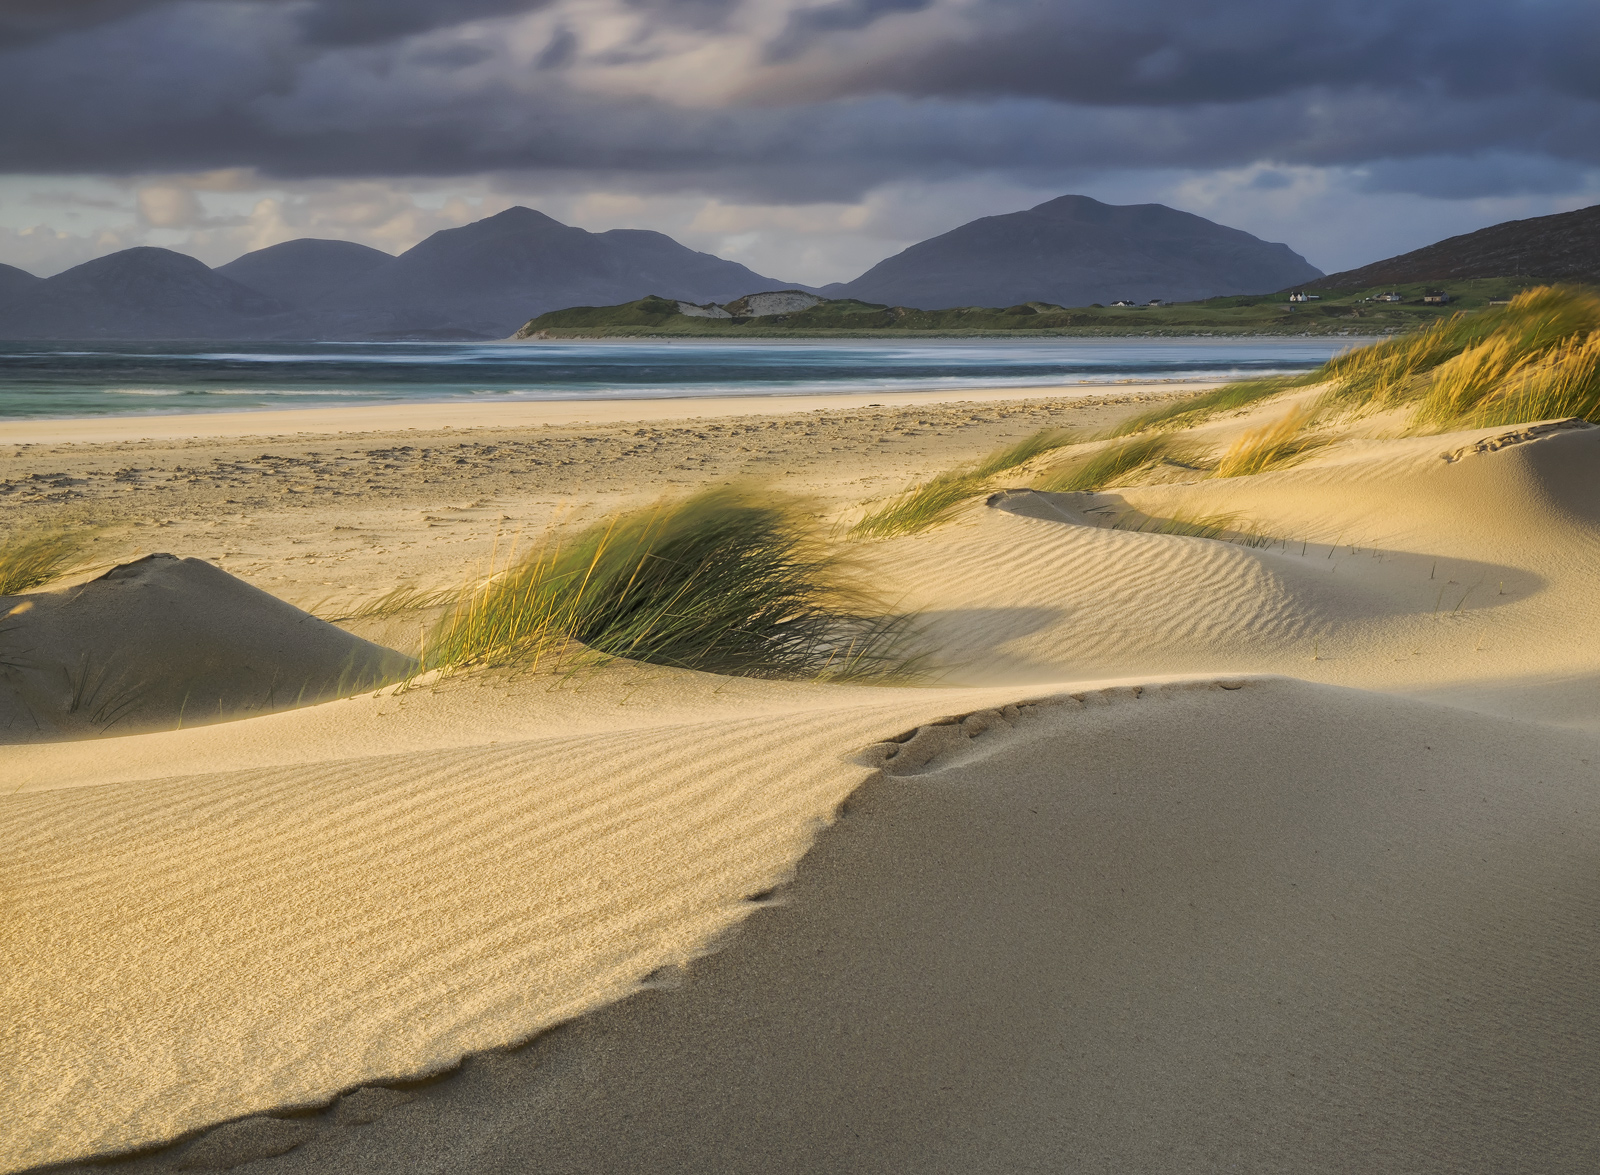 It had been blowing up a fine old storm a few days prior to my trip to Harris so when we descended on Seilebost on the day after...